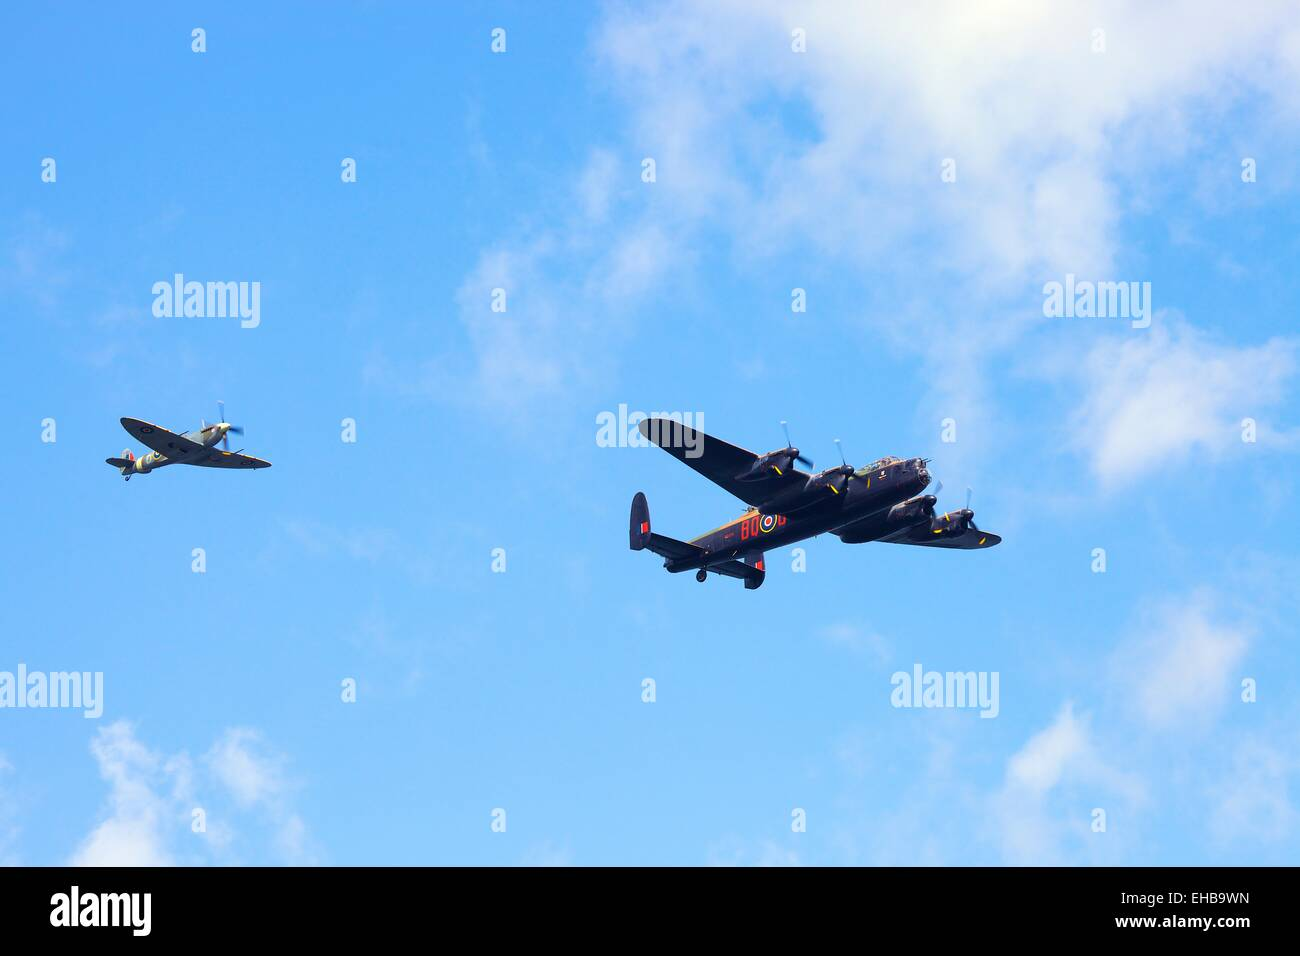 Battle of Britain Memorial Flight. Spitfire Mk Vb. Avro Lancaster B1 Bomber. Windermere Air Show 2011, Cumbria, - Stock Image